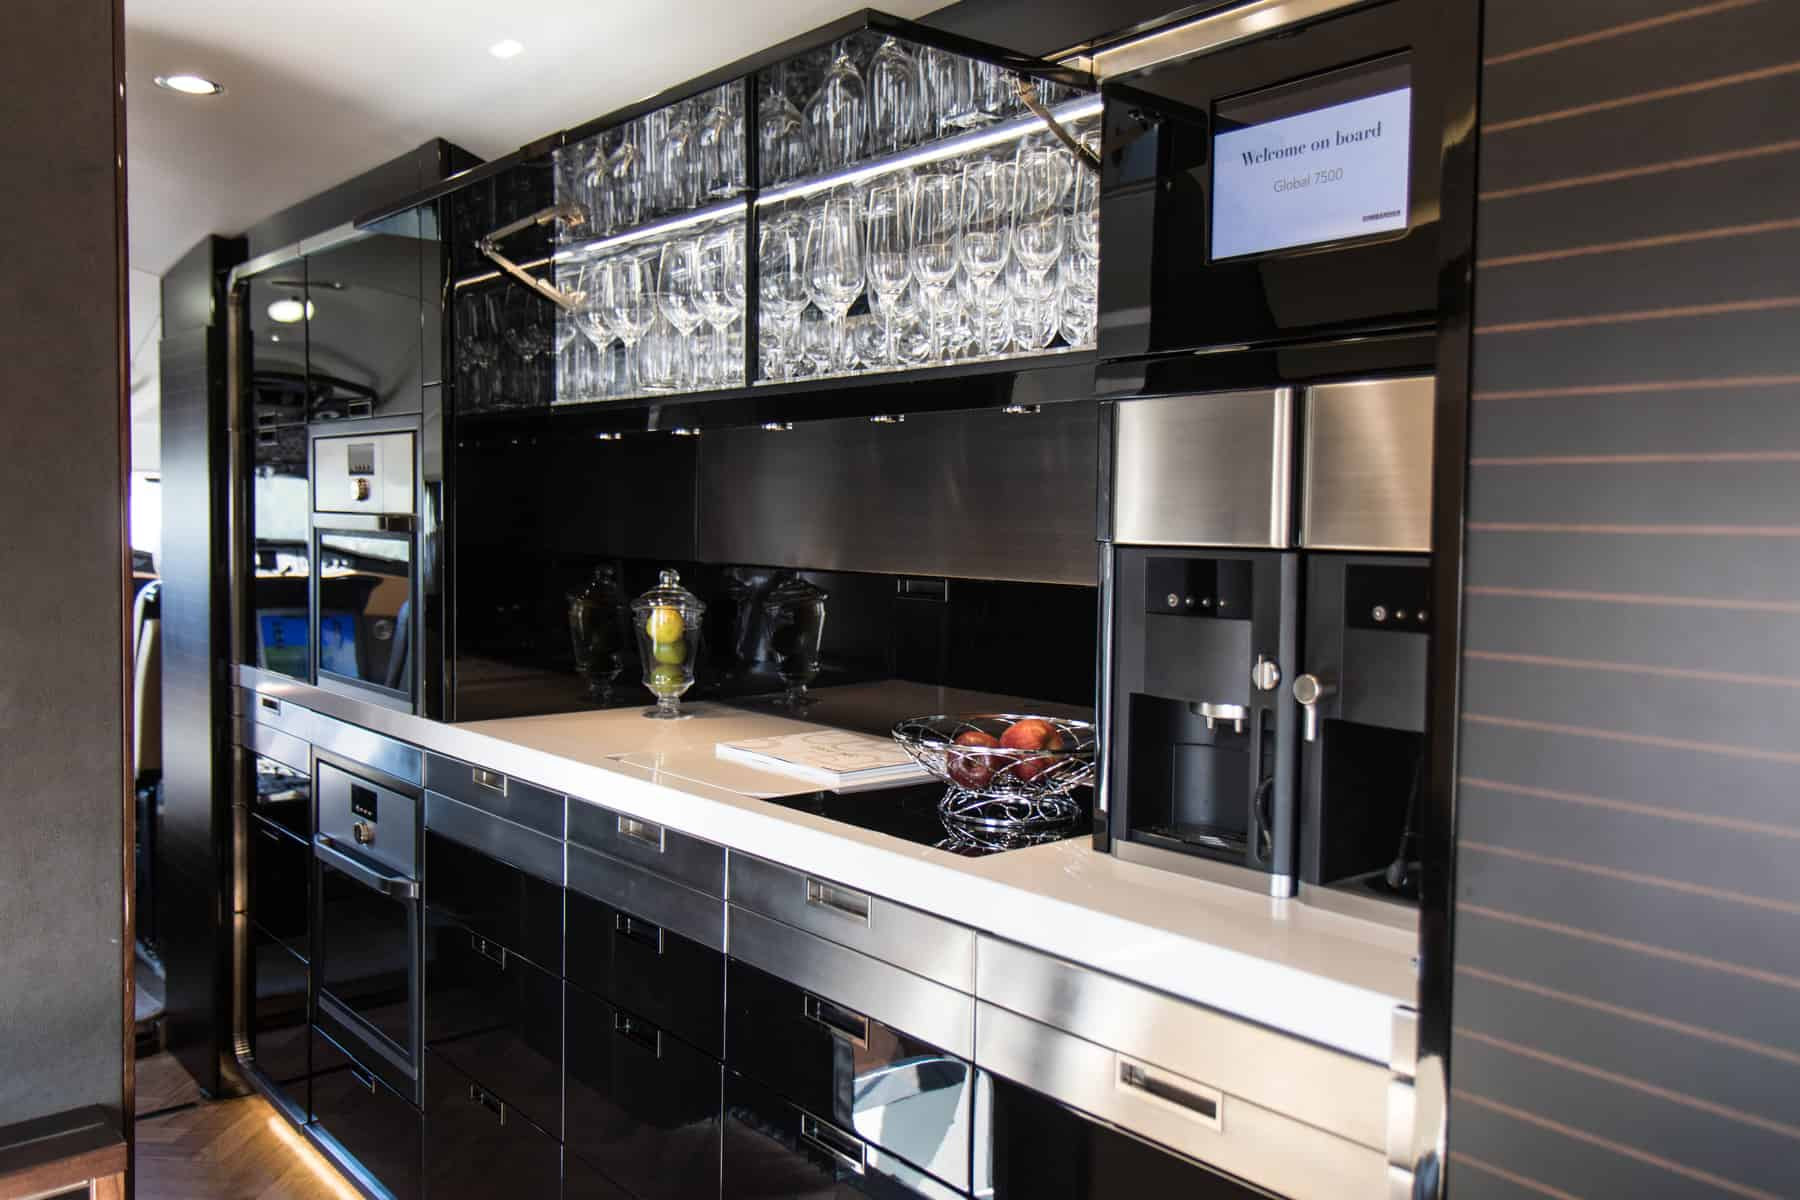 Bombardier Global 7500 kitchen